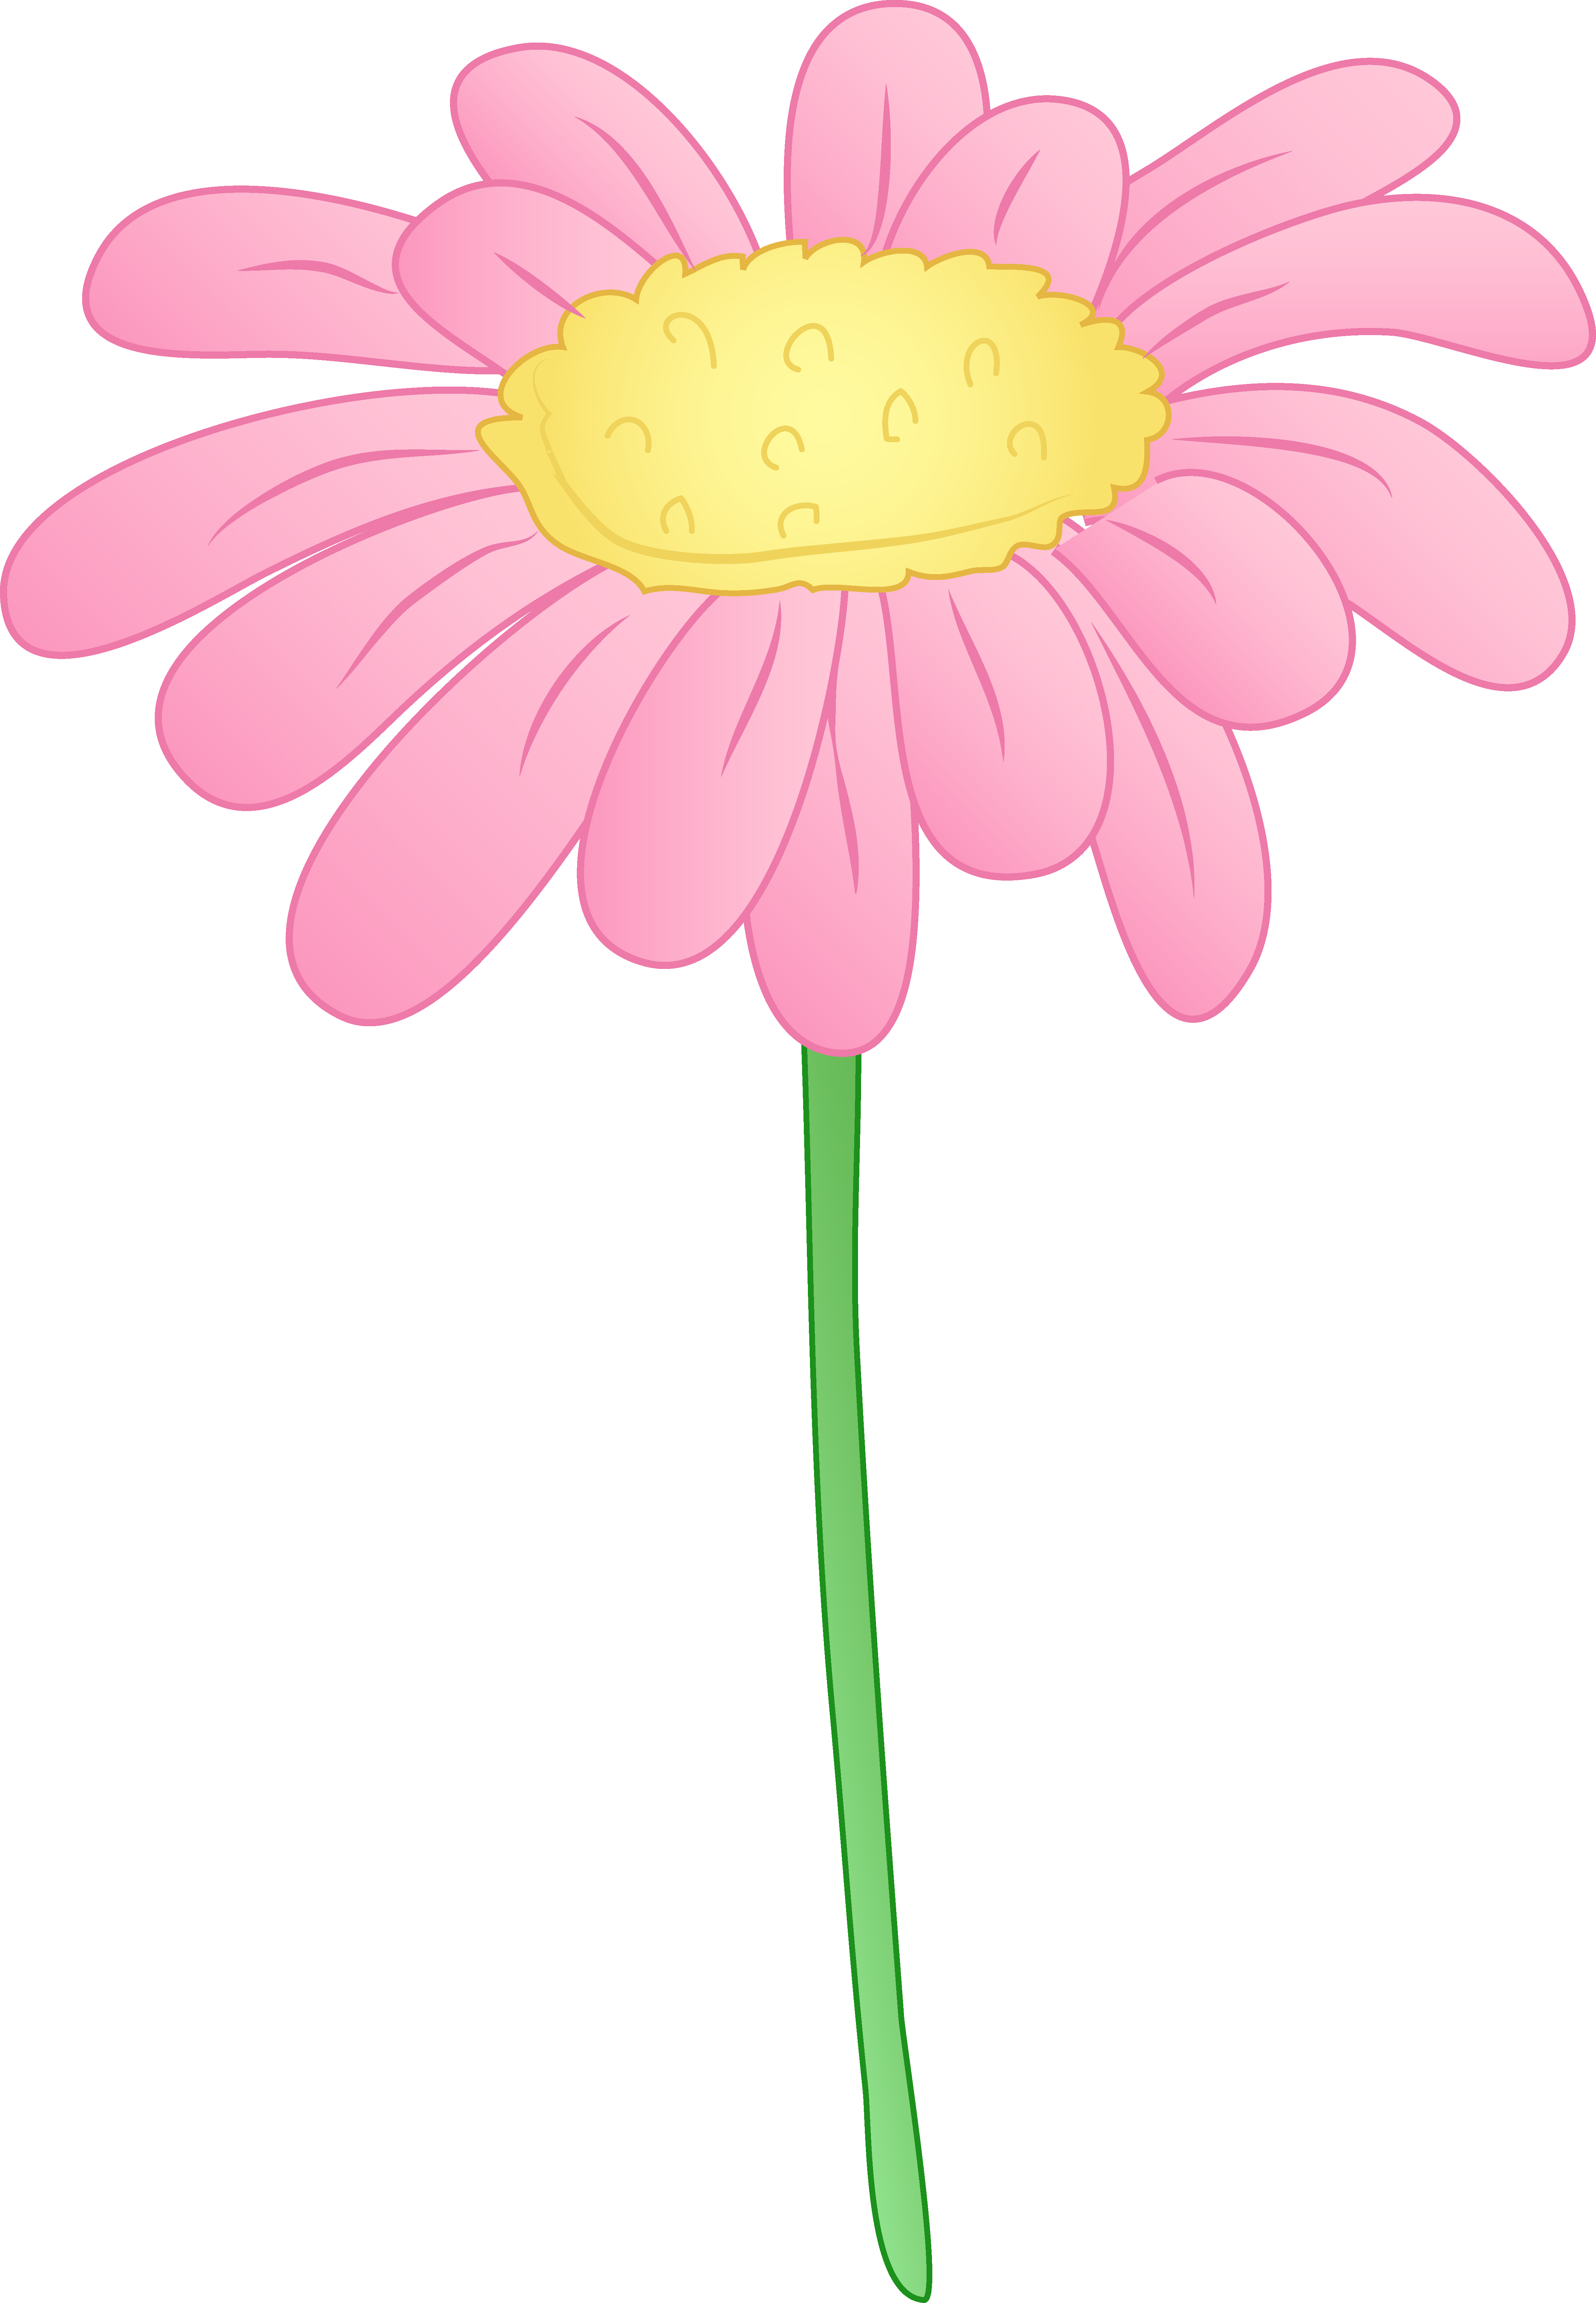 Pretty pink daisy flower. Daisies clipart black and white